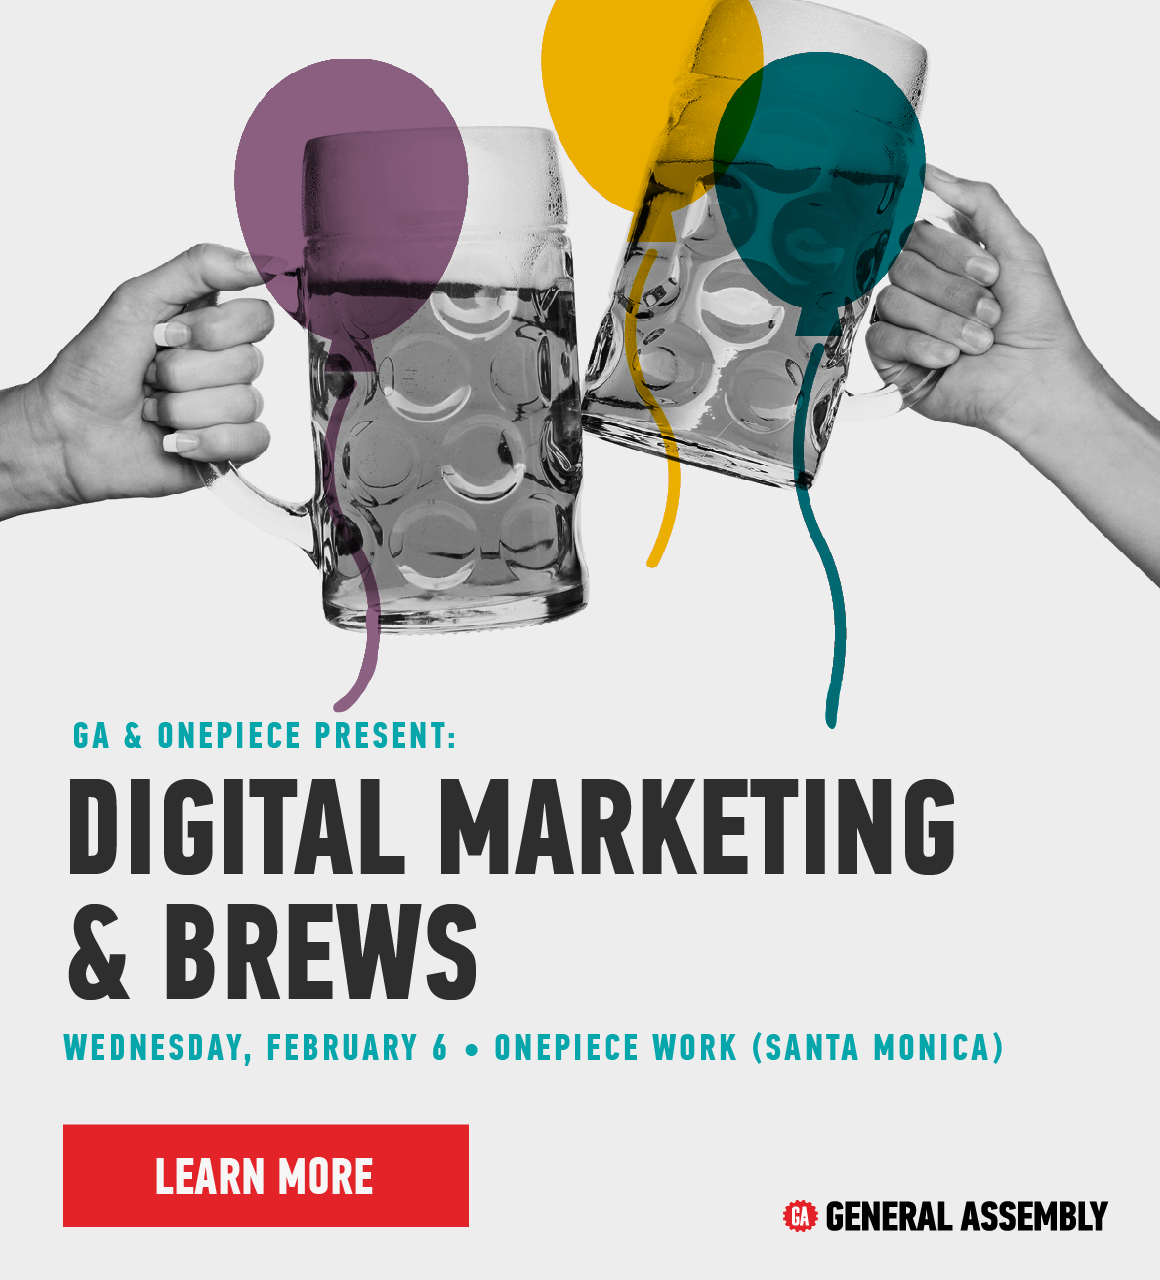 Digital Marketing and Brews at General Assembly